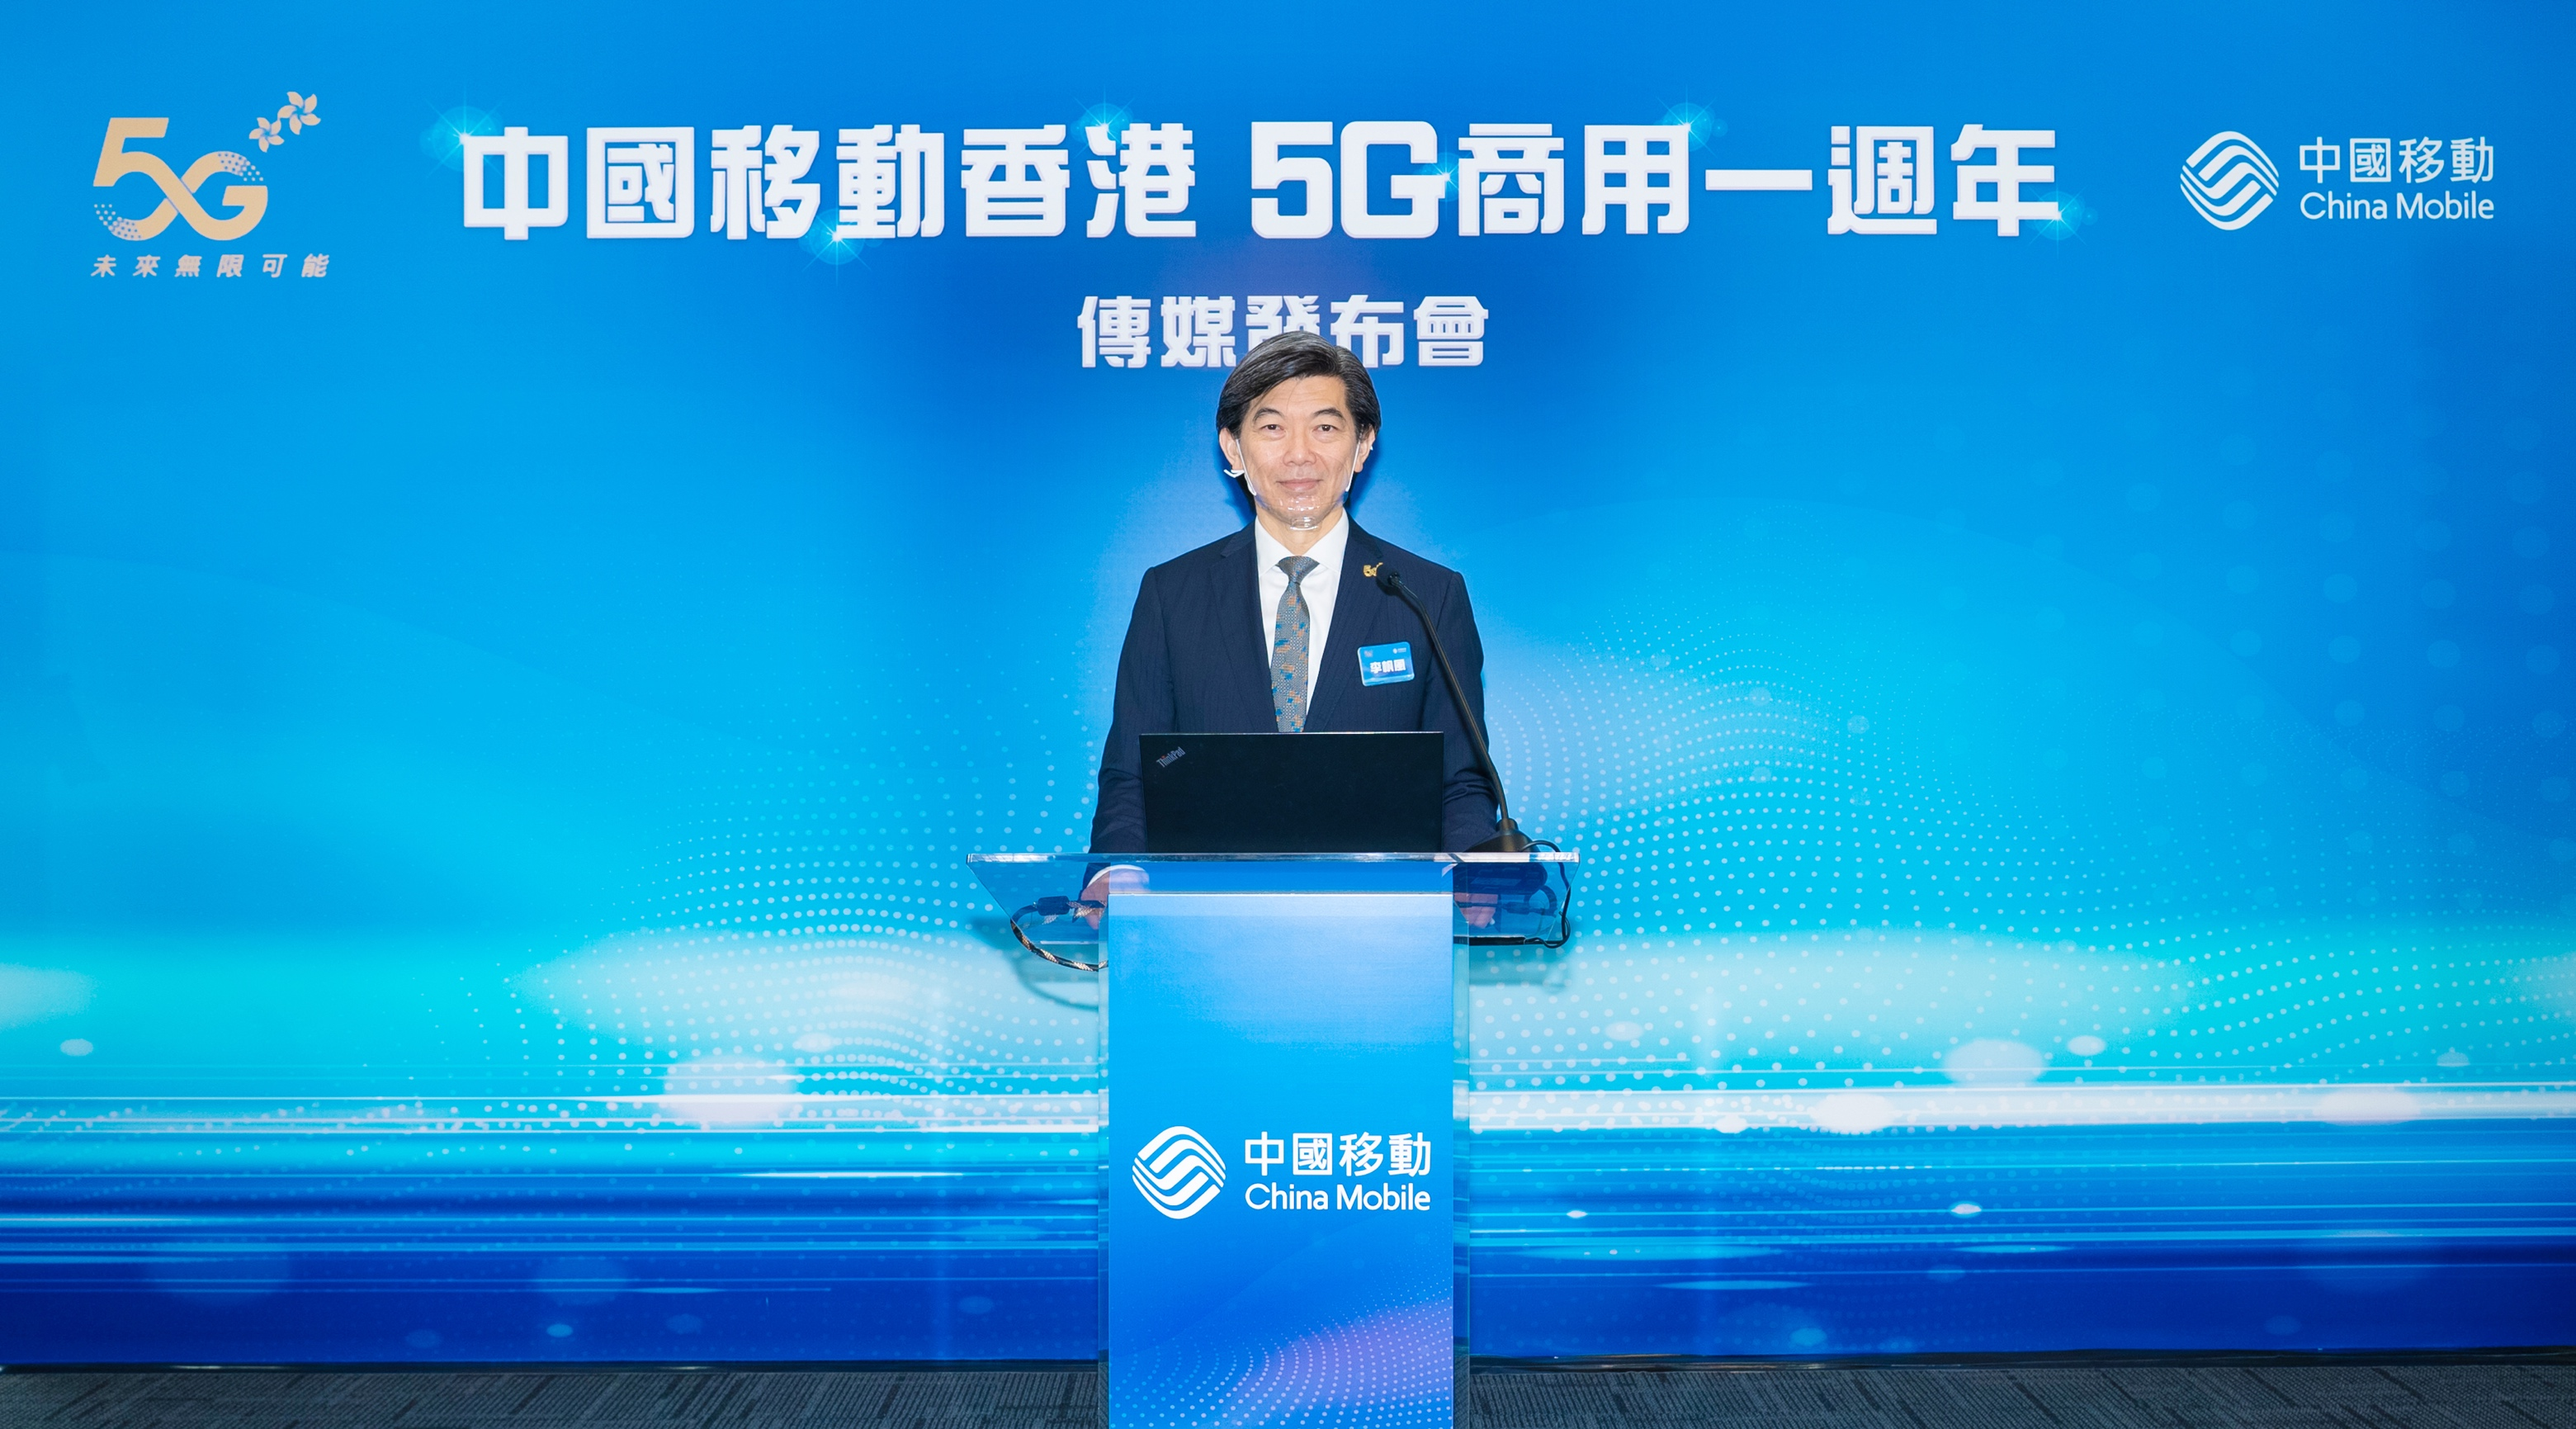 China Mobile Hong Kong Triumphs As Hong Kongs Fastest 5G Network